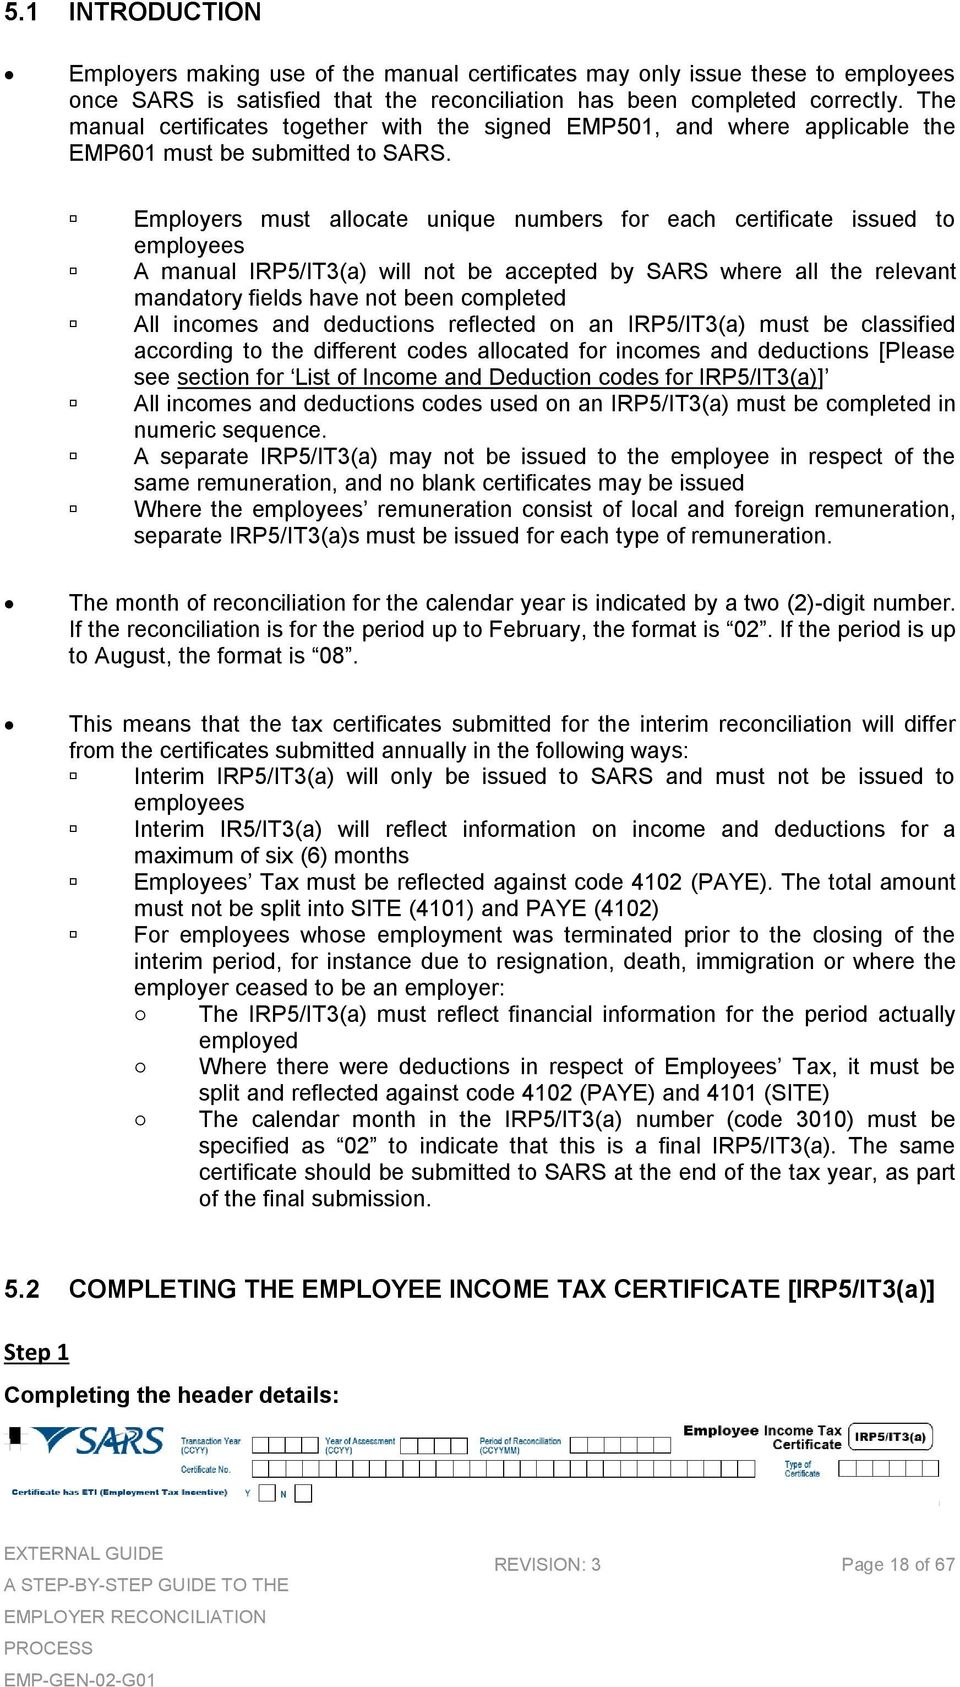 Employers must allocate unique numbers for each certificate issued to employees A manual IRP5/IT3(a) will not be accepted by SARS where all the relevant mandatory fields have not been completed All